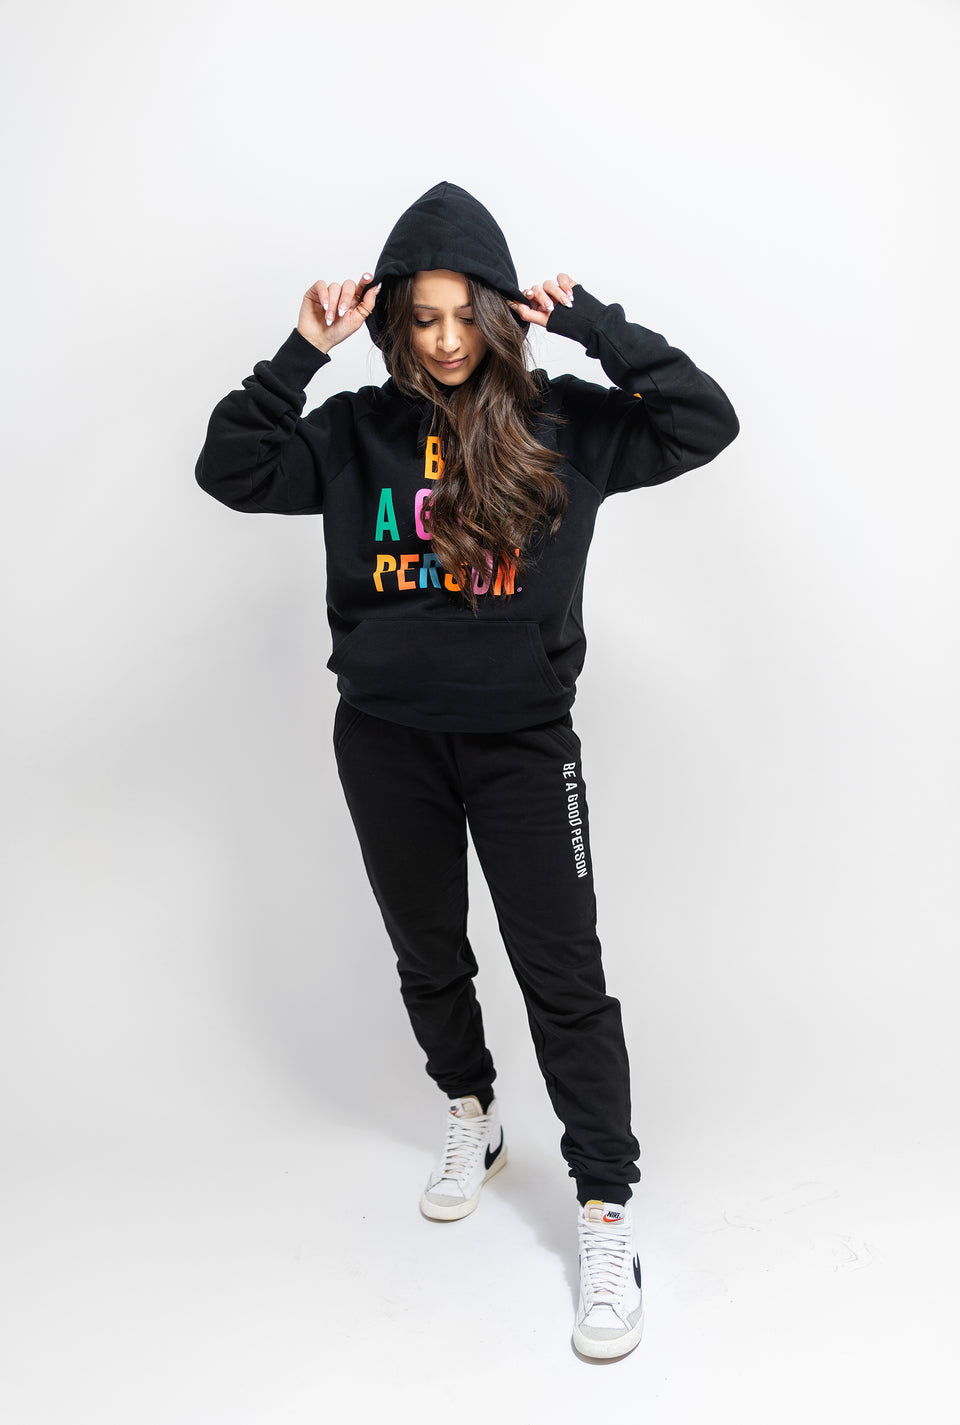 Black Color Spectrum Hoodie - Unisex